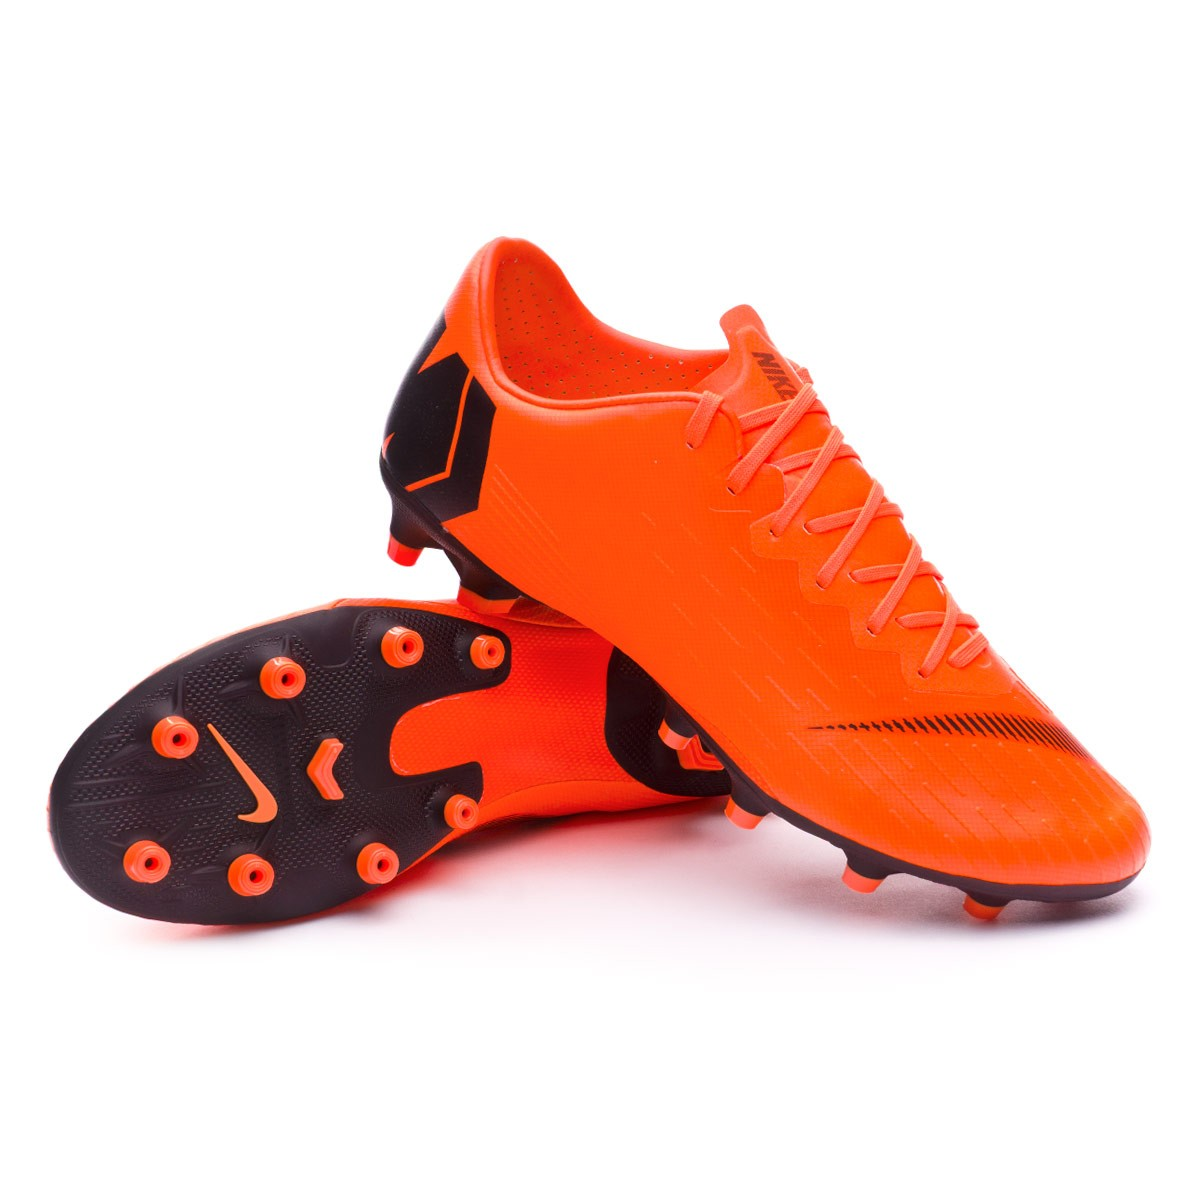 outlet for sale store amazing price Bota Mercurial Vapor XII Pro AG-Pro Total orange-Black-Volt